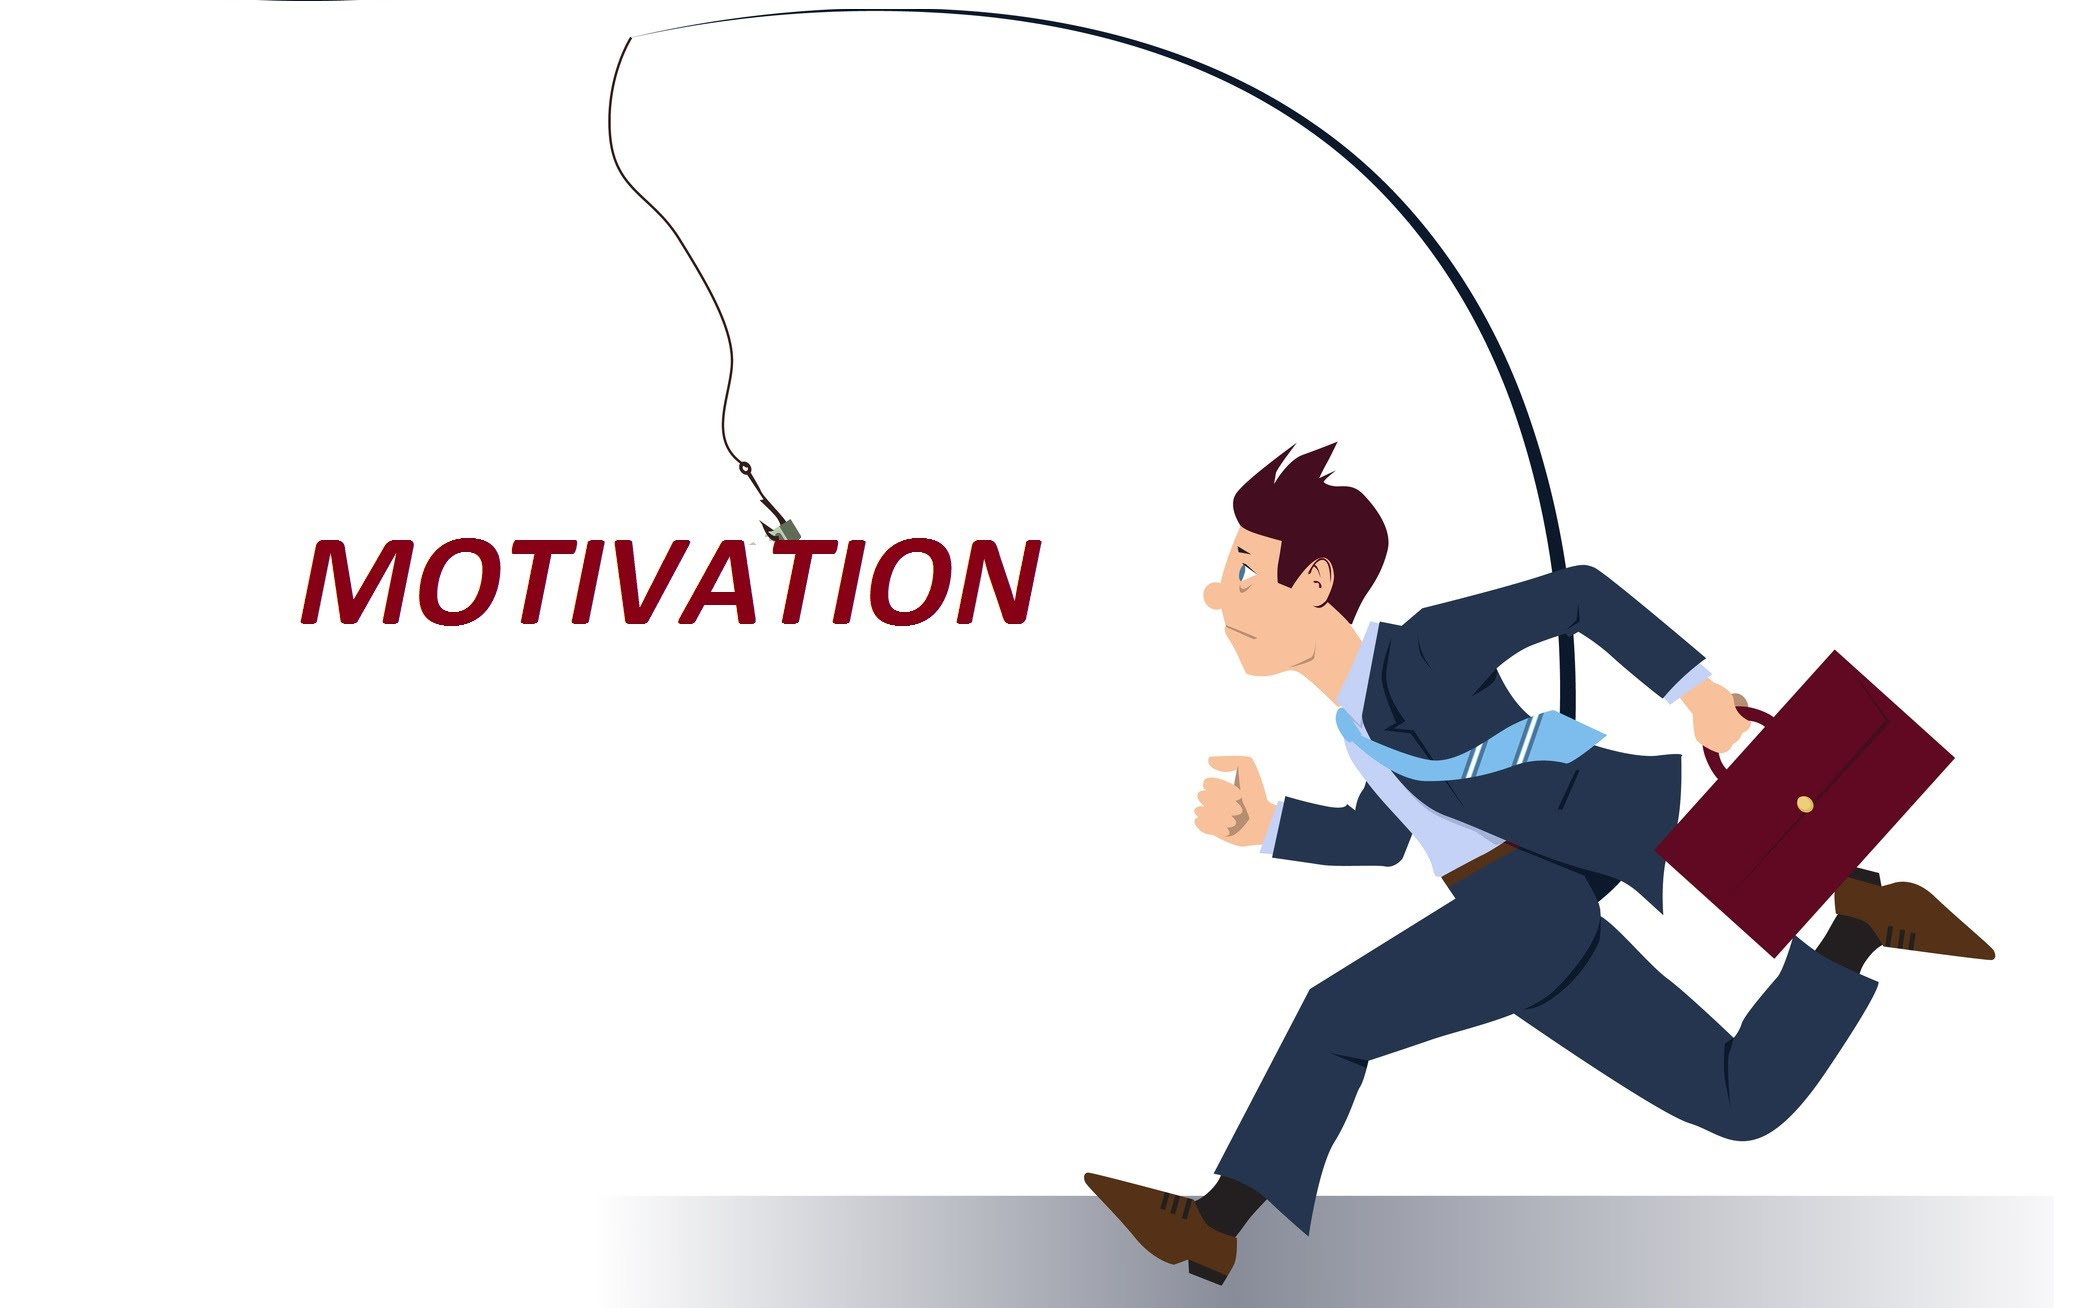 Motivation clipart motivated person. Factors affecting the